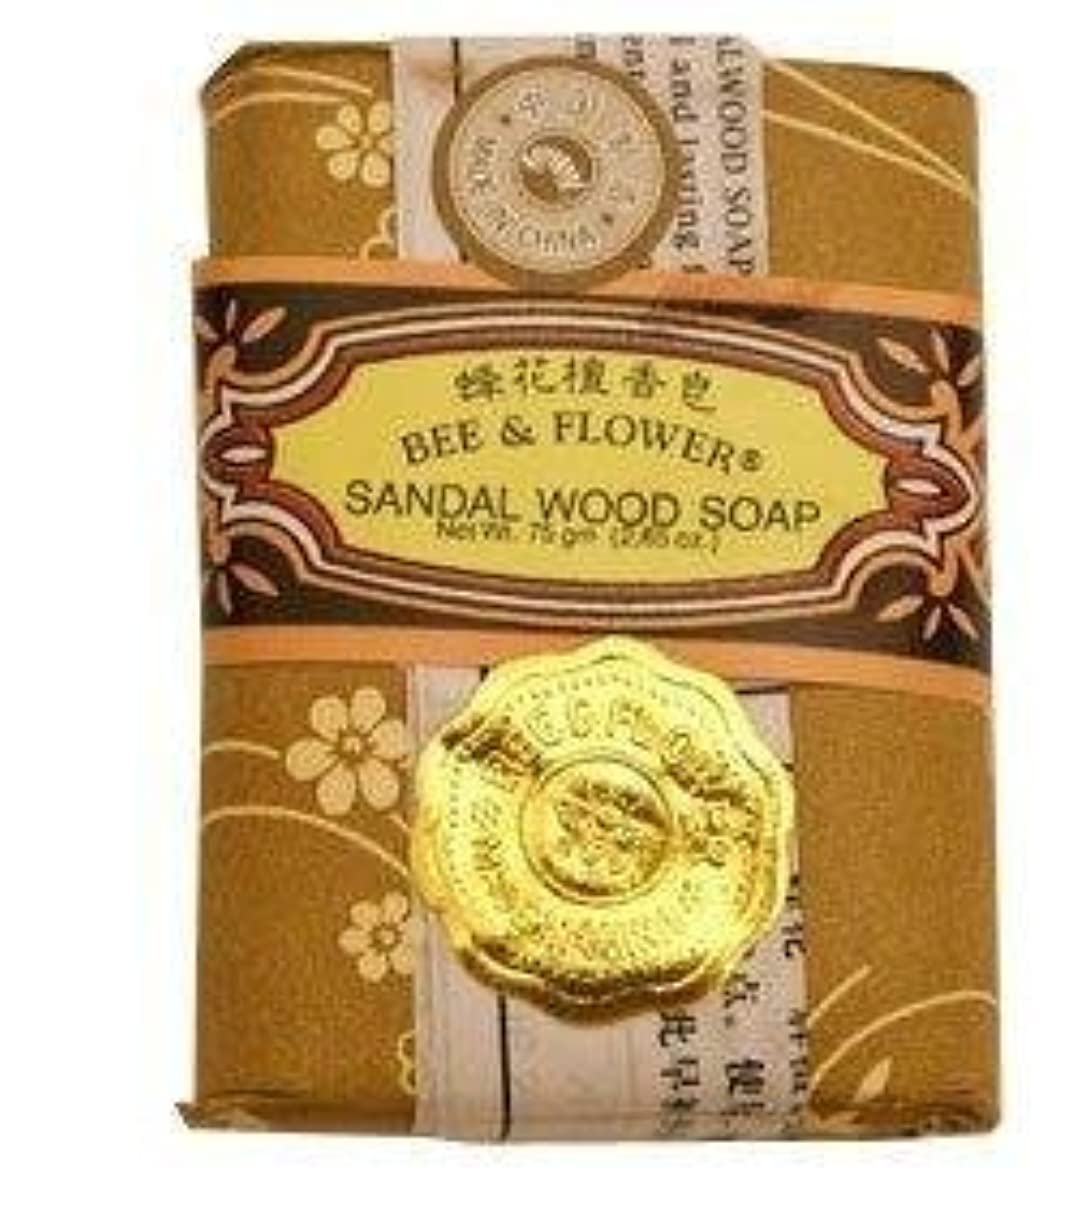 反映するいつかヒントBee And Flower Sandal Wood Bar Soap 2.65 Ounce - 12 per case. [並行輸入品]